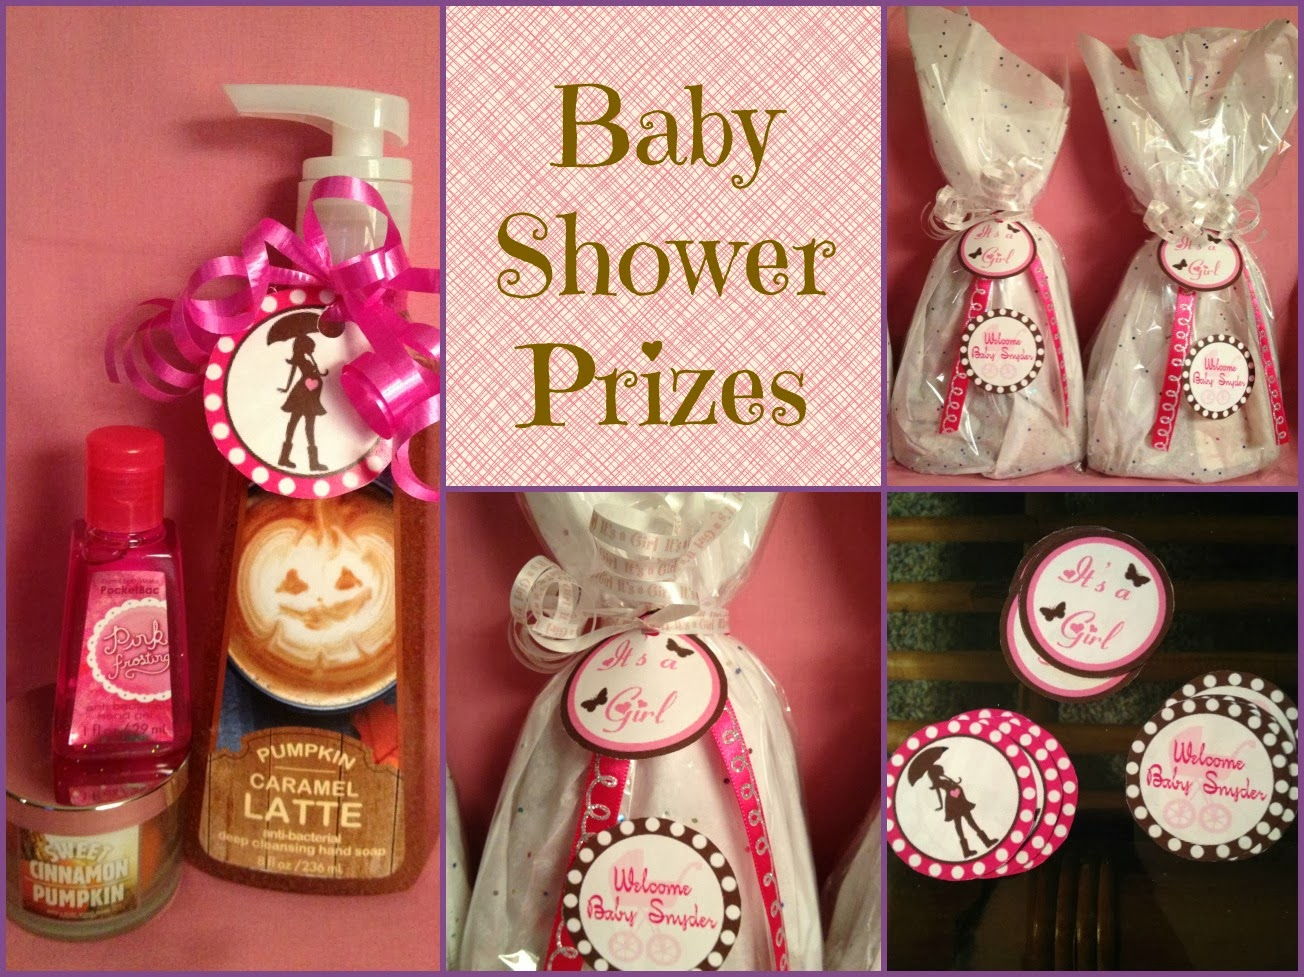 Epic Baby Shower Game Prizes | Baby Shower Ideas Gallery for Lovely Baby Shower Game Prizes